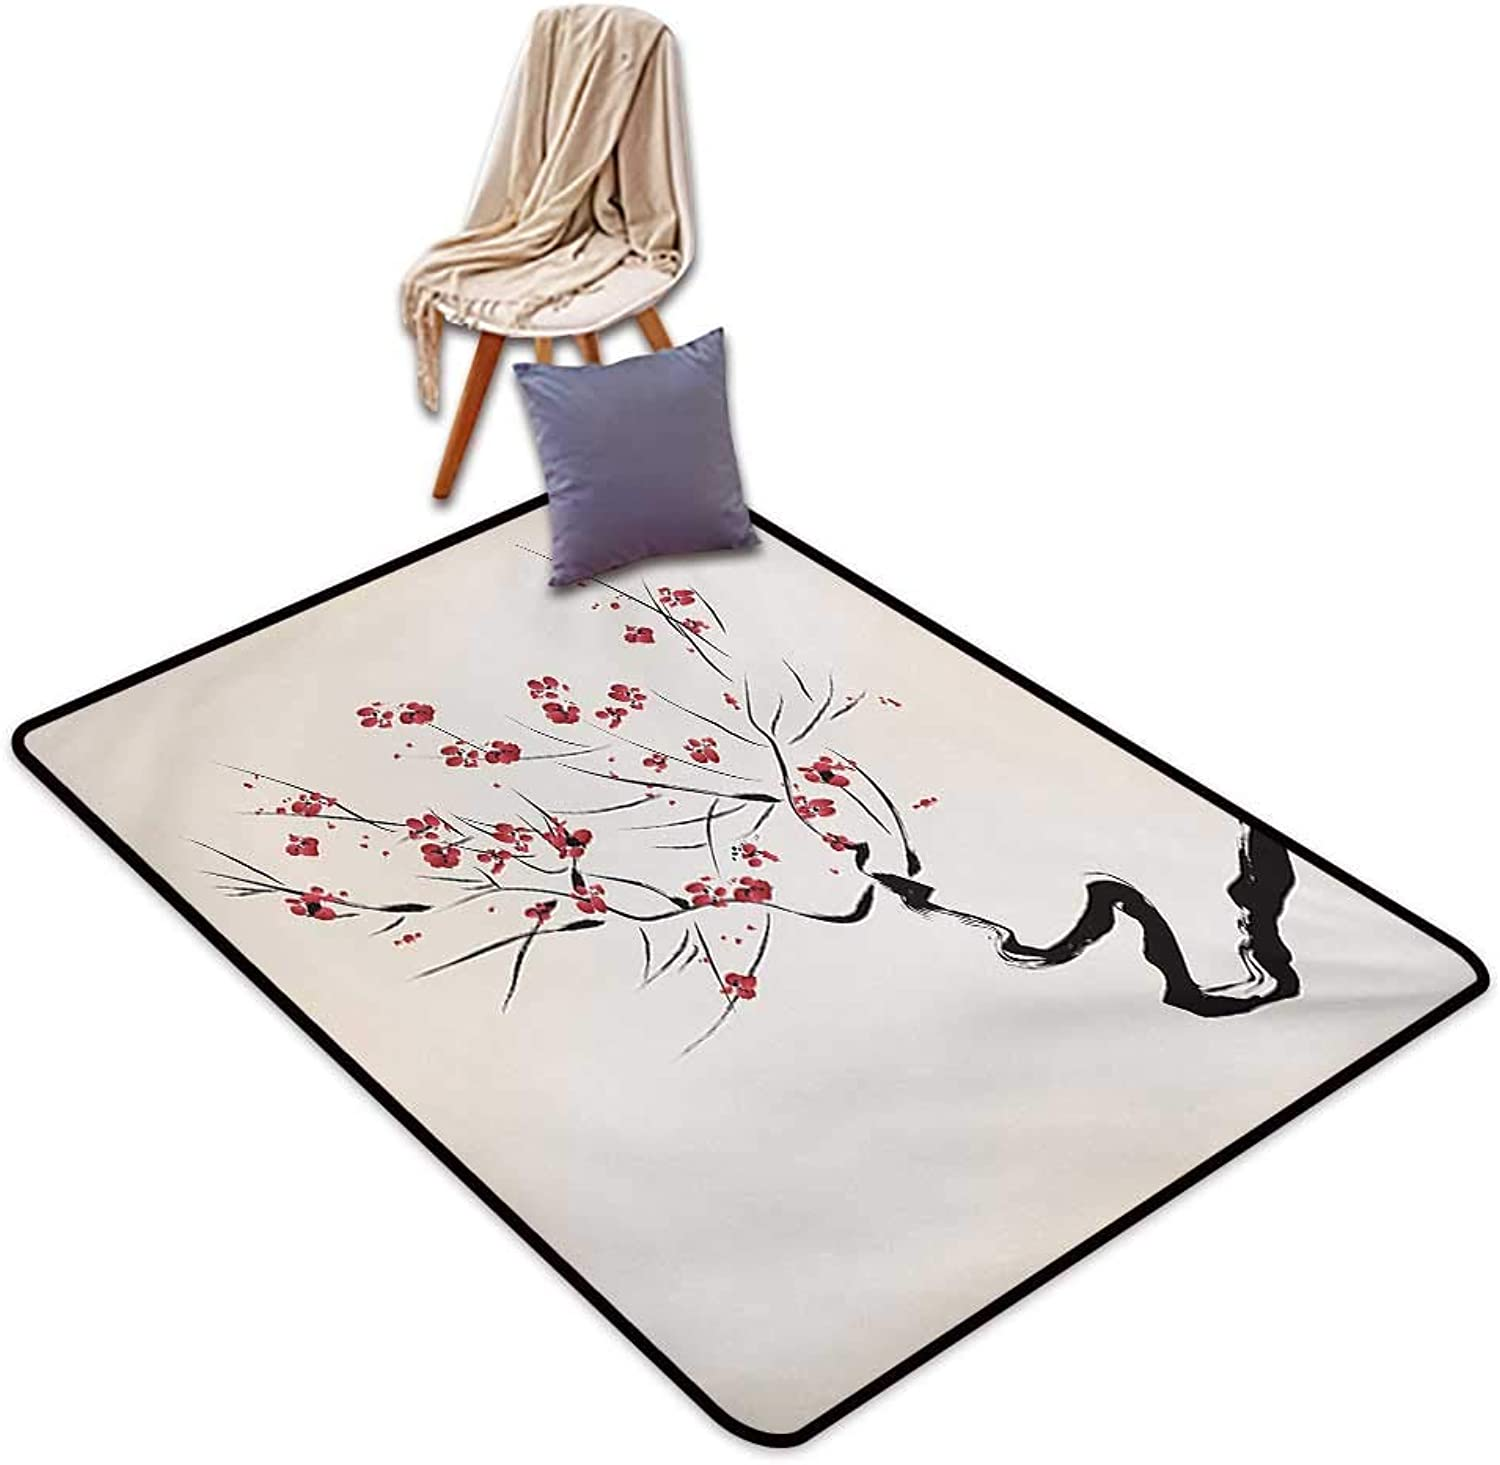 Asian Indoor Super Absorbs Mud Doormat Ink Style Blossoms Stylized Upside Down Brush Painting Effect Illustration Water Absorption, Anti-Skid and Oil Proof 48  Wx59 L Coral Black Beige